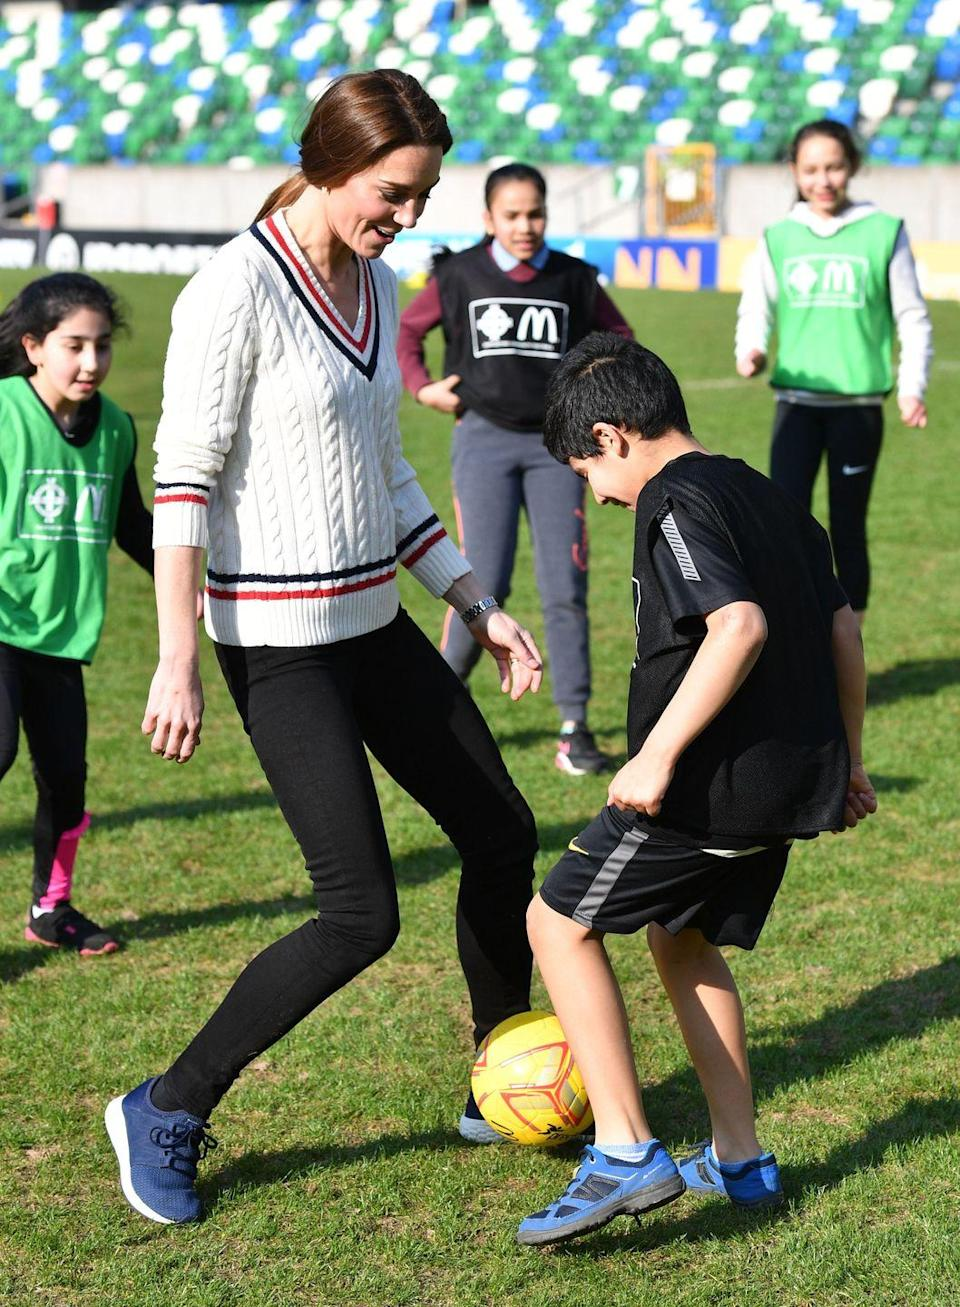 <p>The athletic Duchess played soccer (known in the UK as football) with children during a visit to the National Stadium in Belfast, Ireland, home of the Irish Football Association. </p>